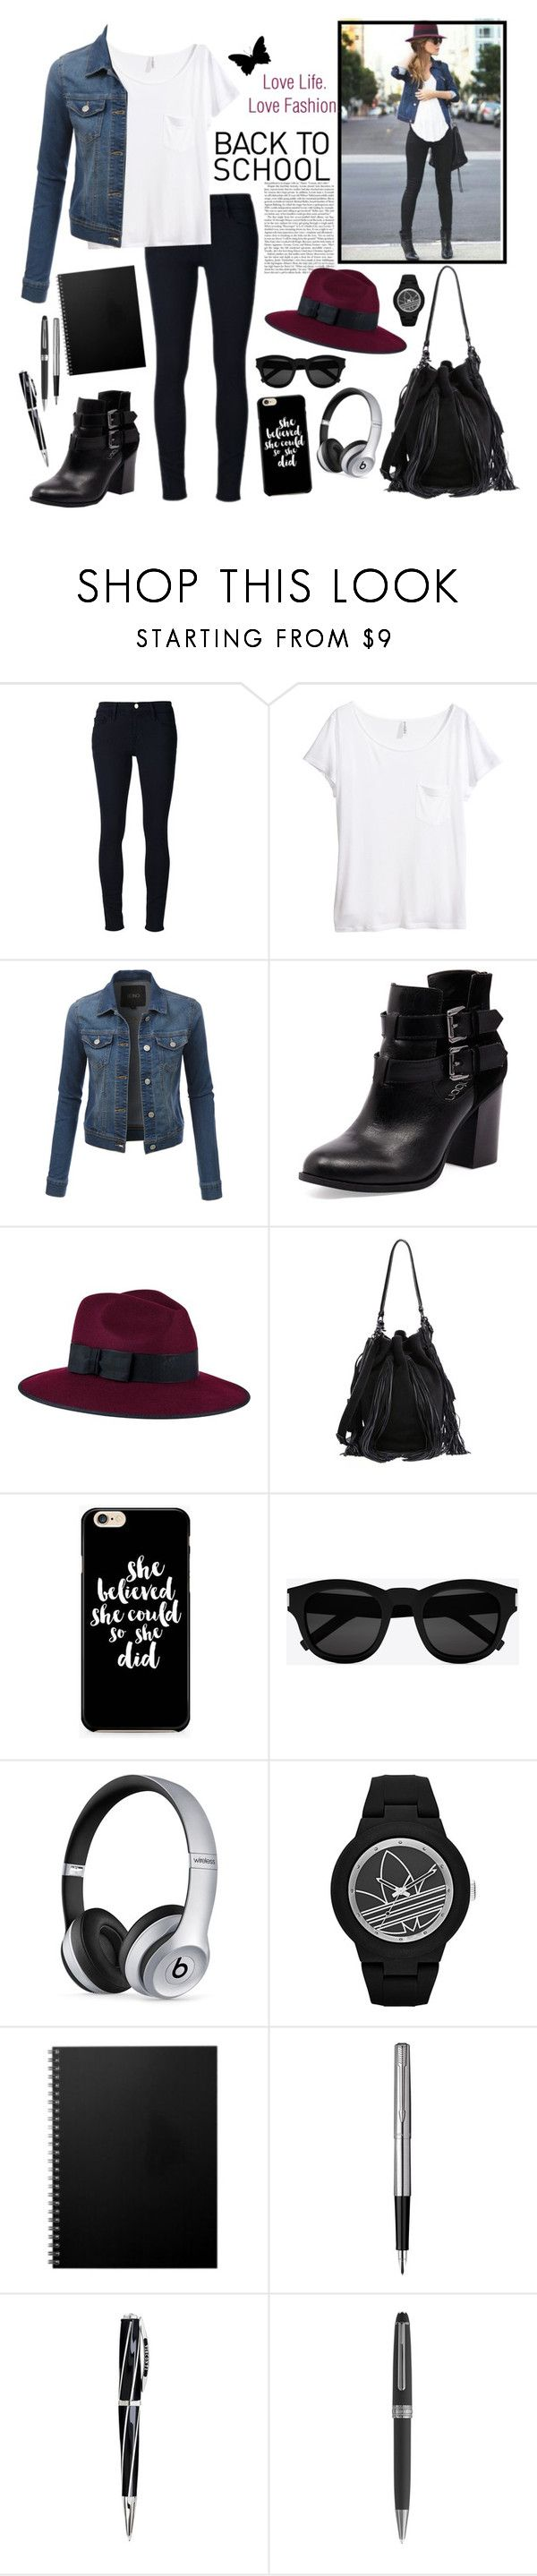 """""""Back to school outfit"""" by whims-and-craze ❤ liked on Polyvore featuring Frame Denim, H&M, LE3NO, Bonbons, Christys', Loeffler Randall, Yves Saint Laurent, Beats by Dr. Dre, adidas and Parker"""